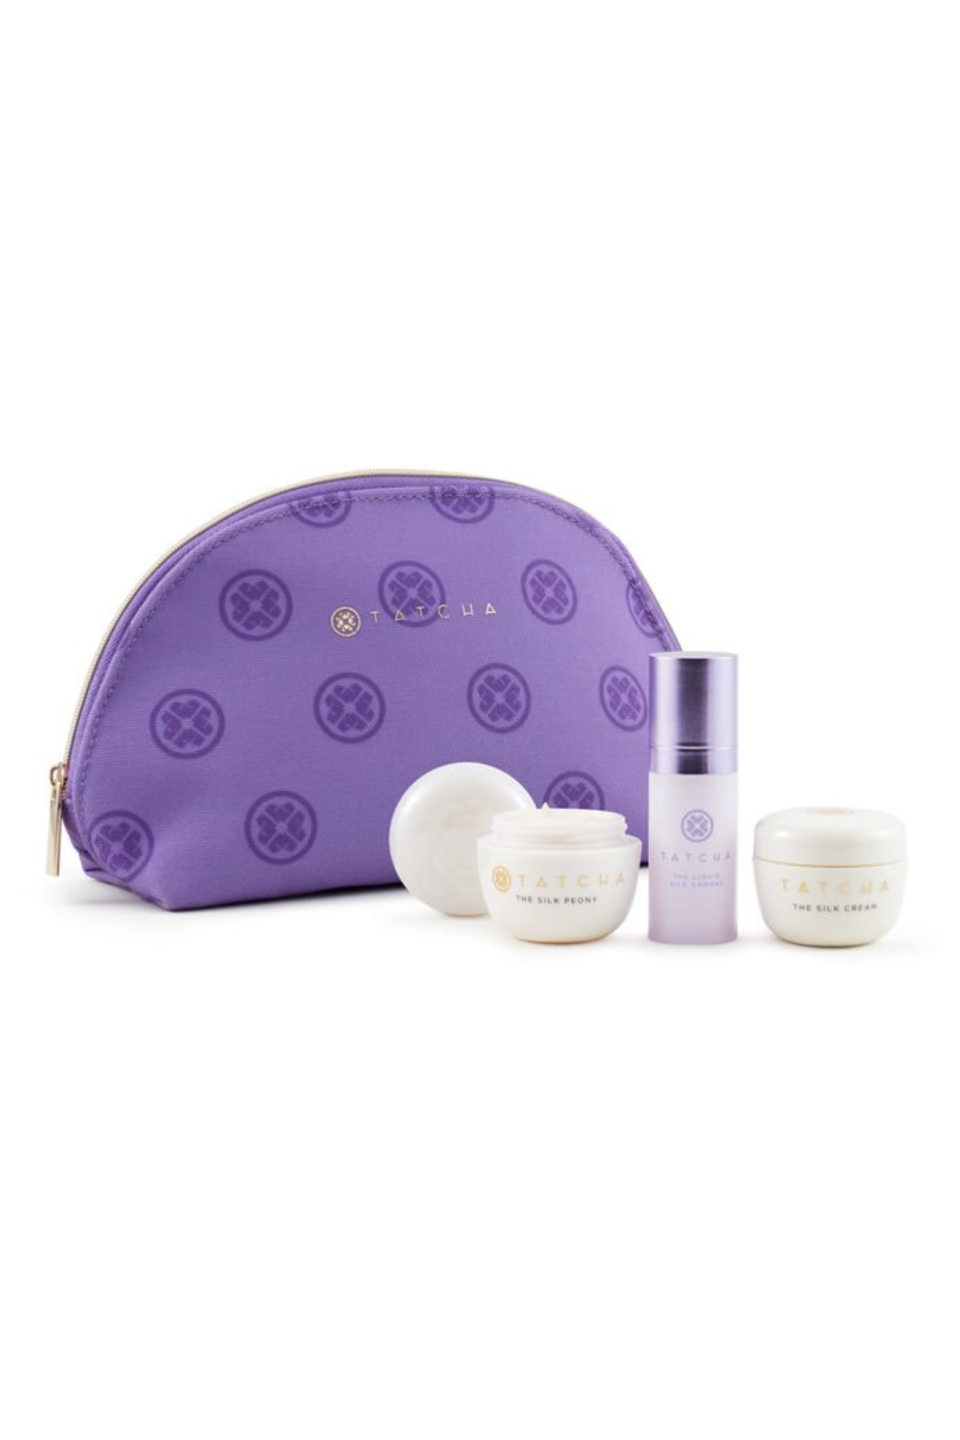 """<p><strong>Tatcha</strong></p><p>www.tatcha.com</p><p><strong>$68.00</strong></p><p><a href=""""https://go.redirectingat.com?id=74968X1596630&url=https%3A%2F%2Fwww.tatcha.com%2Fproduct%2FSB10033T.html%3Fcgid%3Deyecare%23page%3D1%26start%3D1&sref=https%3A%2F%2Fwww.marieclaire.com%2Ffashion%2Fg33849312%2Fgifts-that-give-back%2F"""" rel=""""nofollow noopener"""" target=""""_blank"""" data-ylk=""""slk:SHOP IT"""" class=""""link rapid-noclick-resp"""">SHOP IT</a></p><p>Cult beauty brand Tatcha is known for its amazing skincare products, so gift this moisturizing trio (comes with an eye cream, face cream, and primer). With each purchase, you'll help fund Tatcha's girls education program <a href=""""https://www.tatcha.com/giving-back.html"""" rel=""""nofollow noopener"""" target=""""_blank"""" data-ylk=""""slk:Beautiful Faces, Beautiful Futures"""" class=""""link rapid-noclick-resp"""">Beautiful Faces, Beautiful Futures</a>. </p>"""